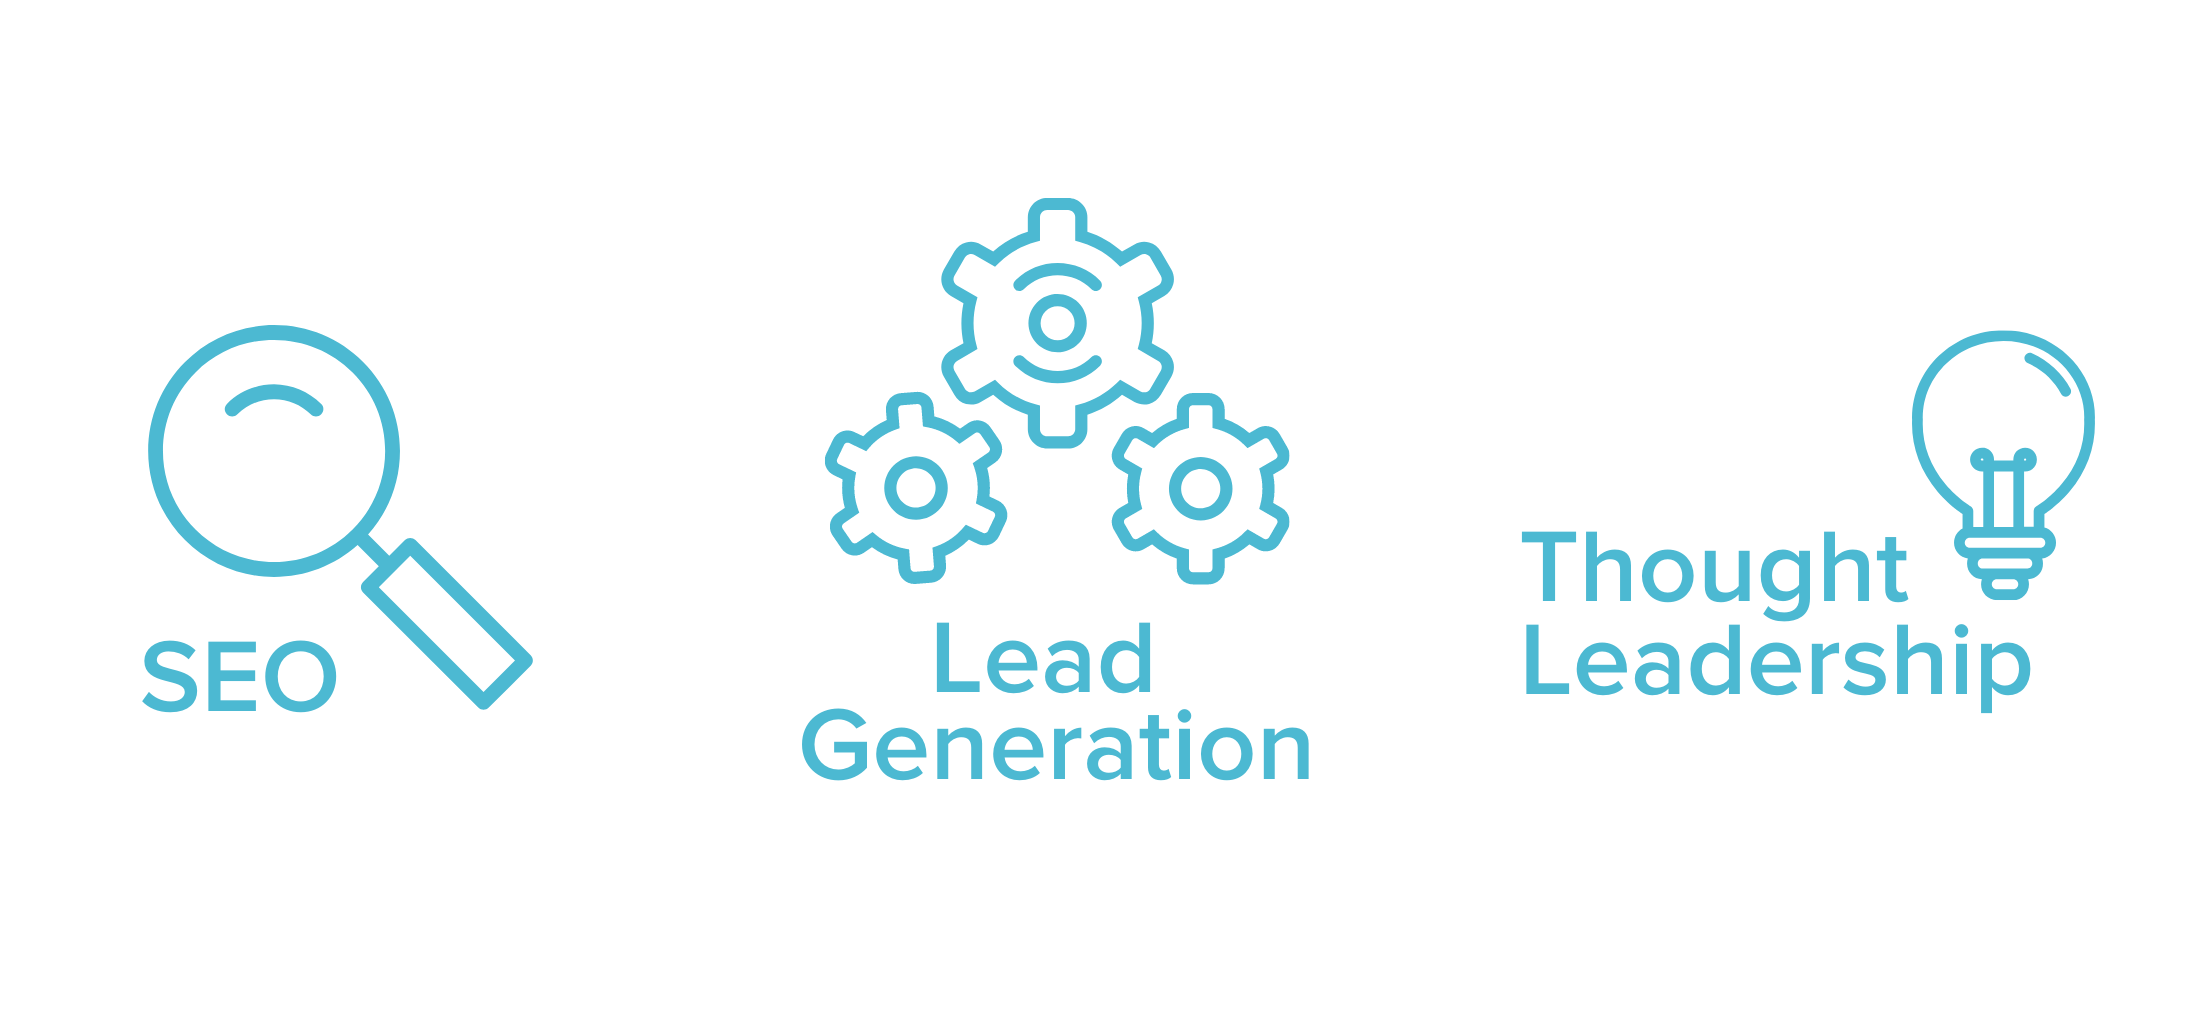 Content Marketing Goals: SEO, Lead Generation, and Thought Leadership